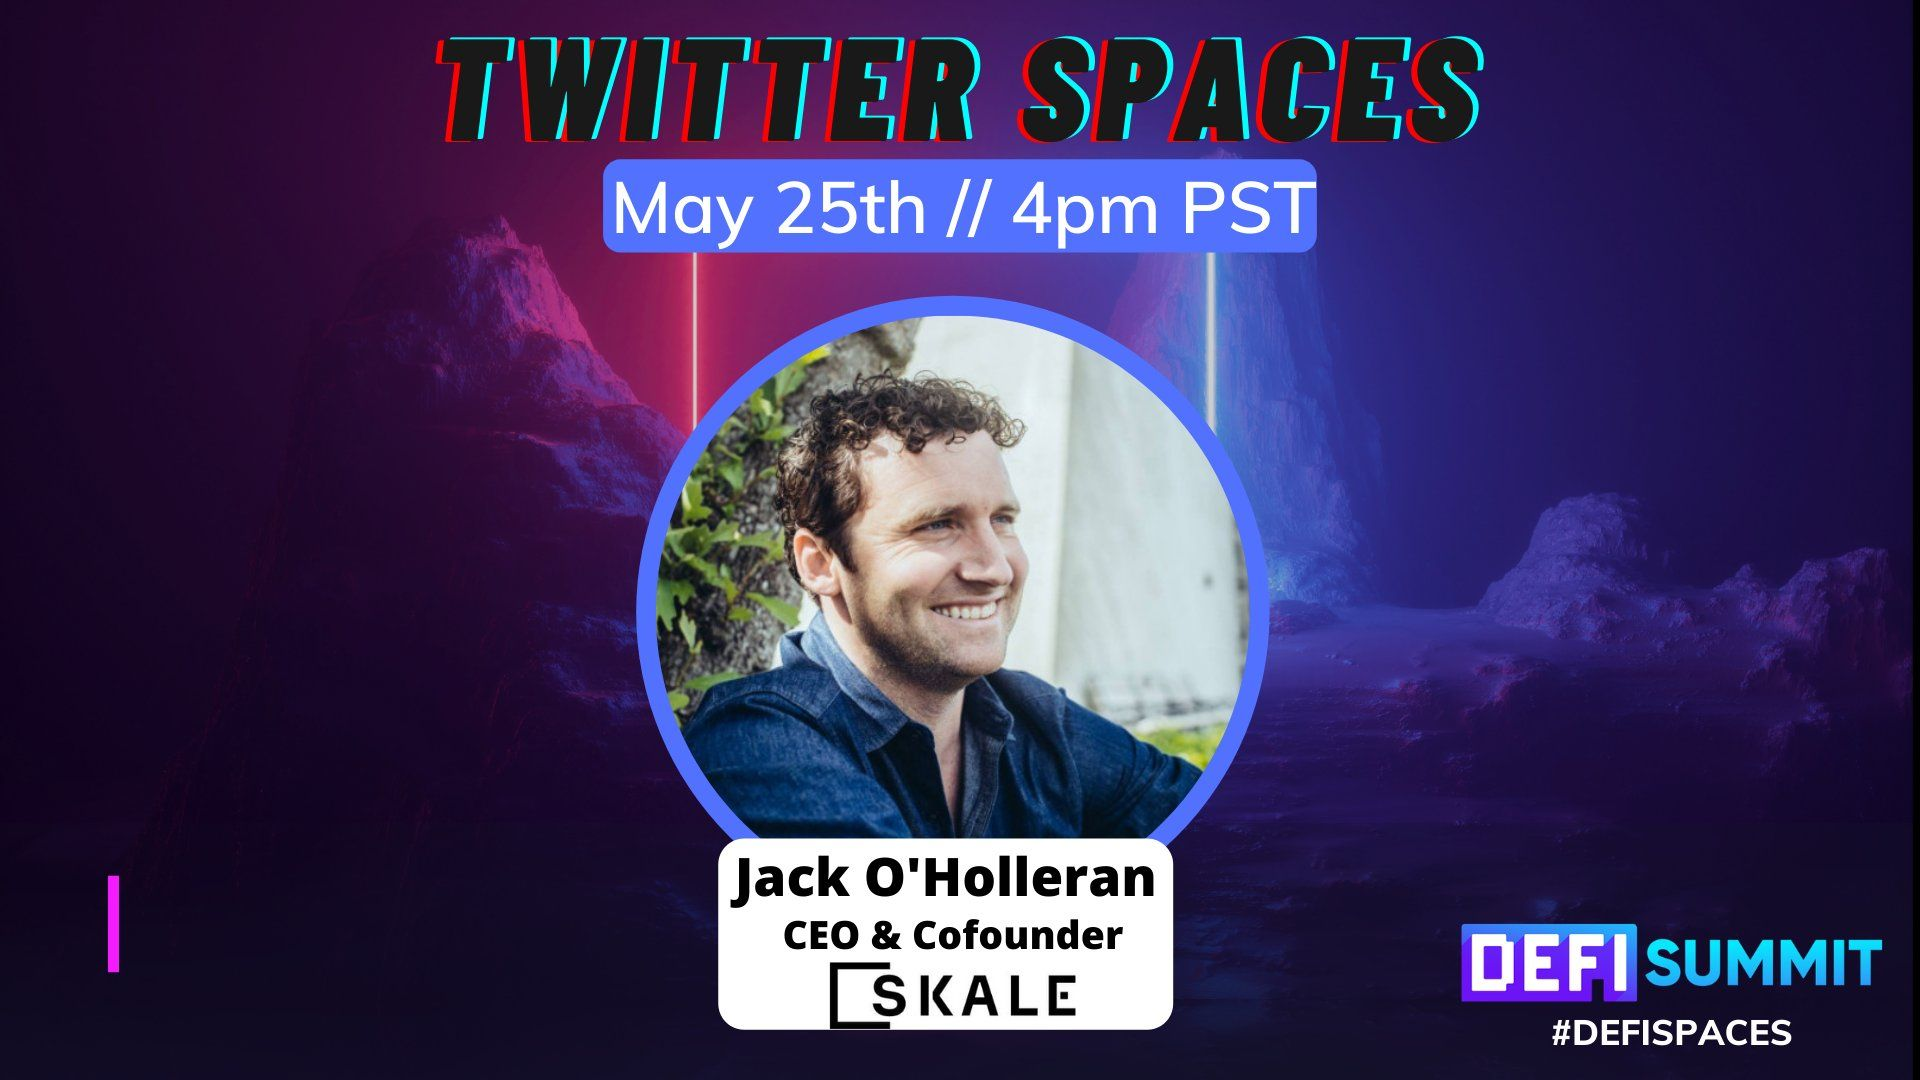 Join the conversation between DEFISummit and Jack O'Holleran on Twitter Spaces